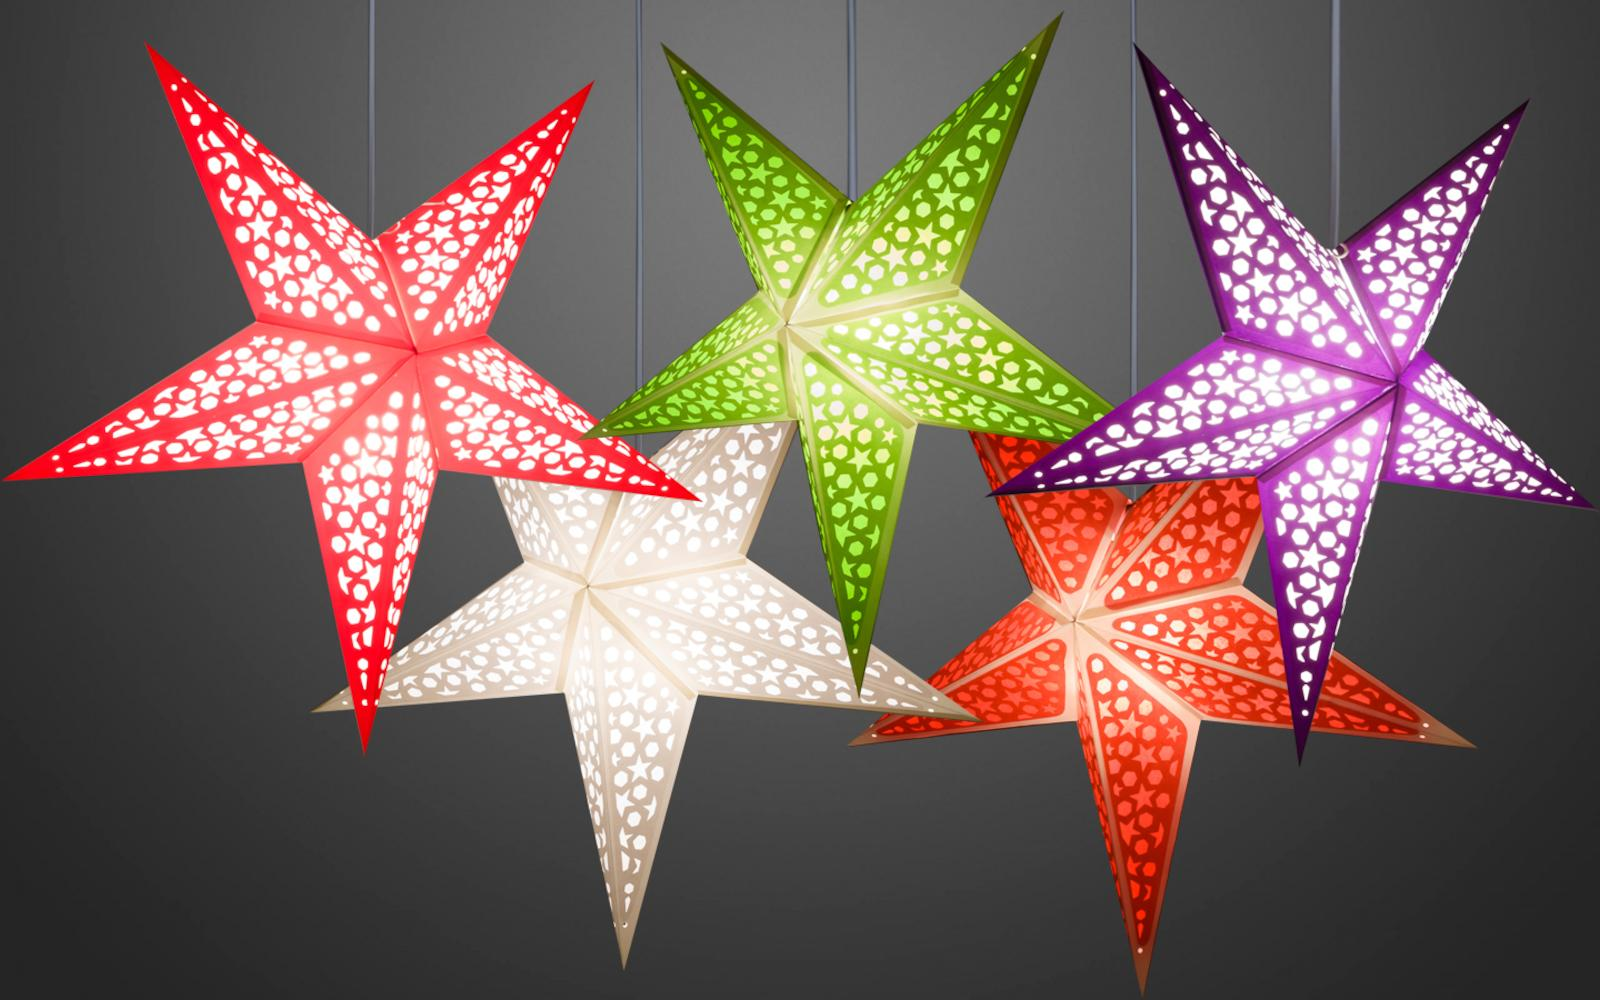 Mosaic Decorative Paper Star Lanterns & Light Shades